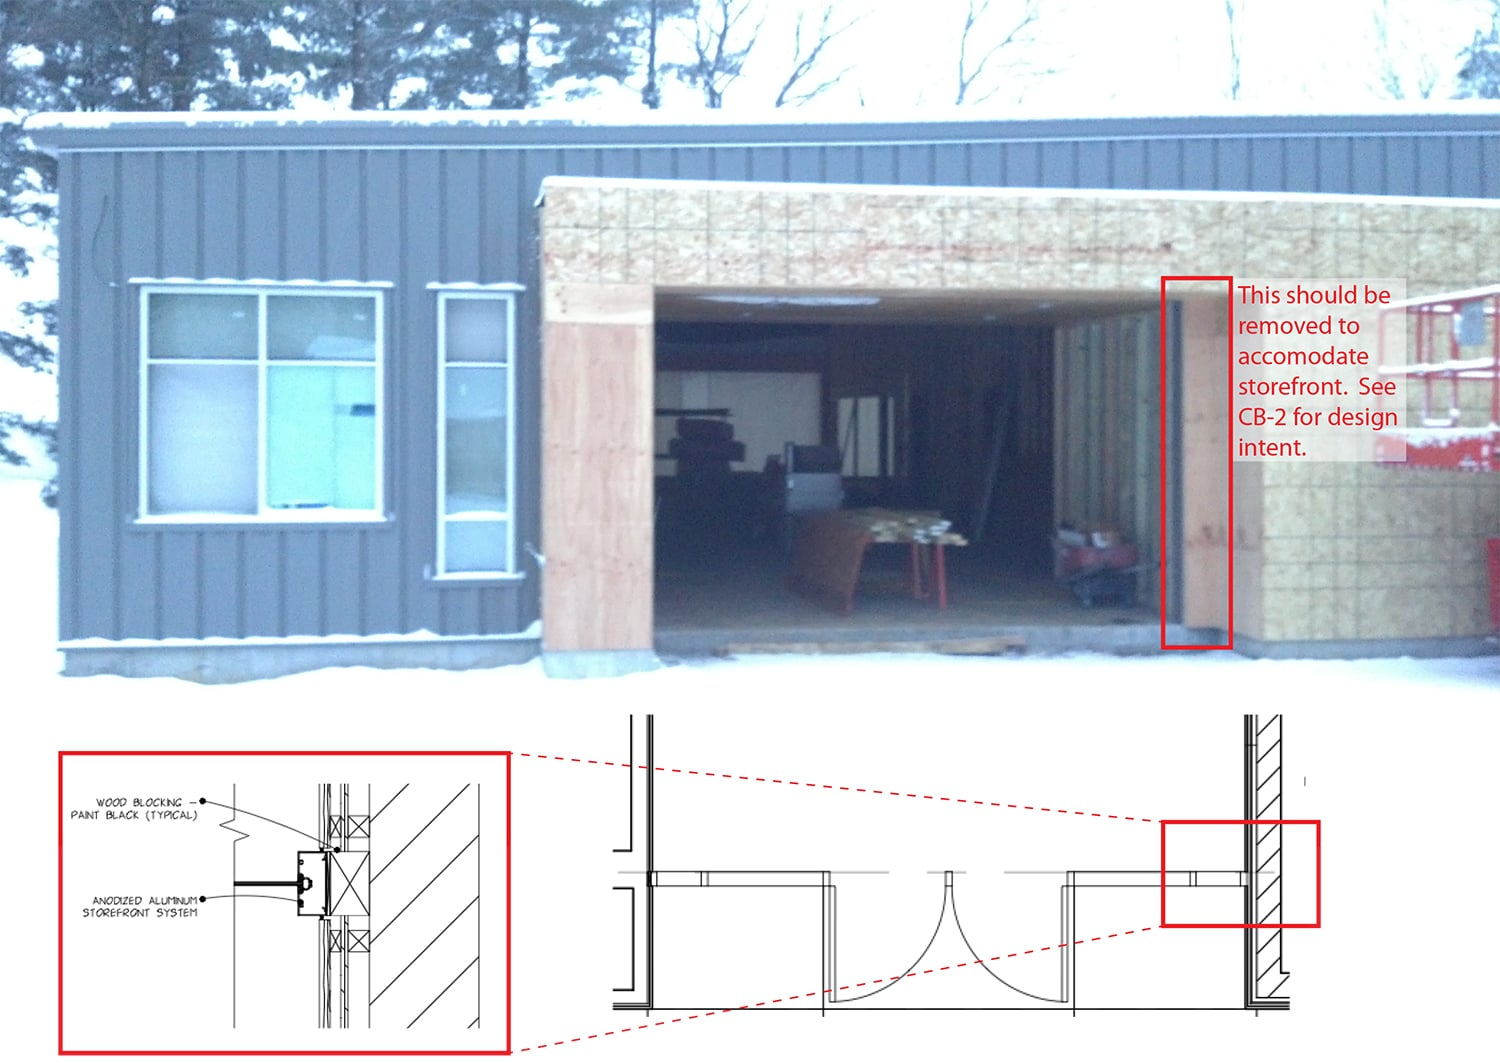 Storefront Entry 02-21-12